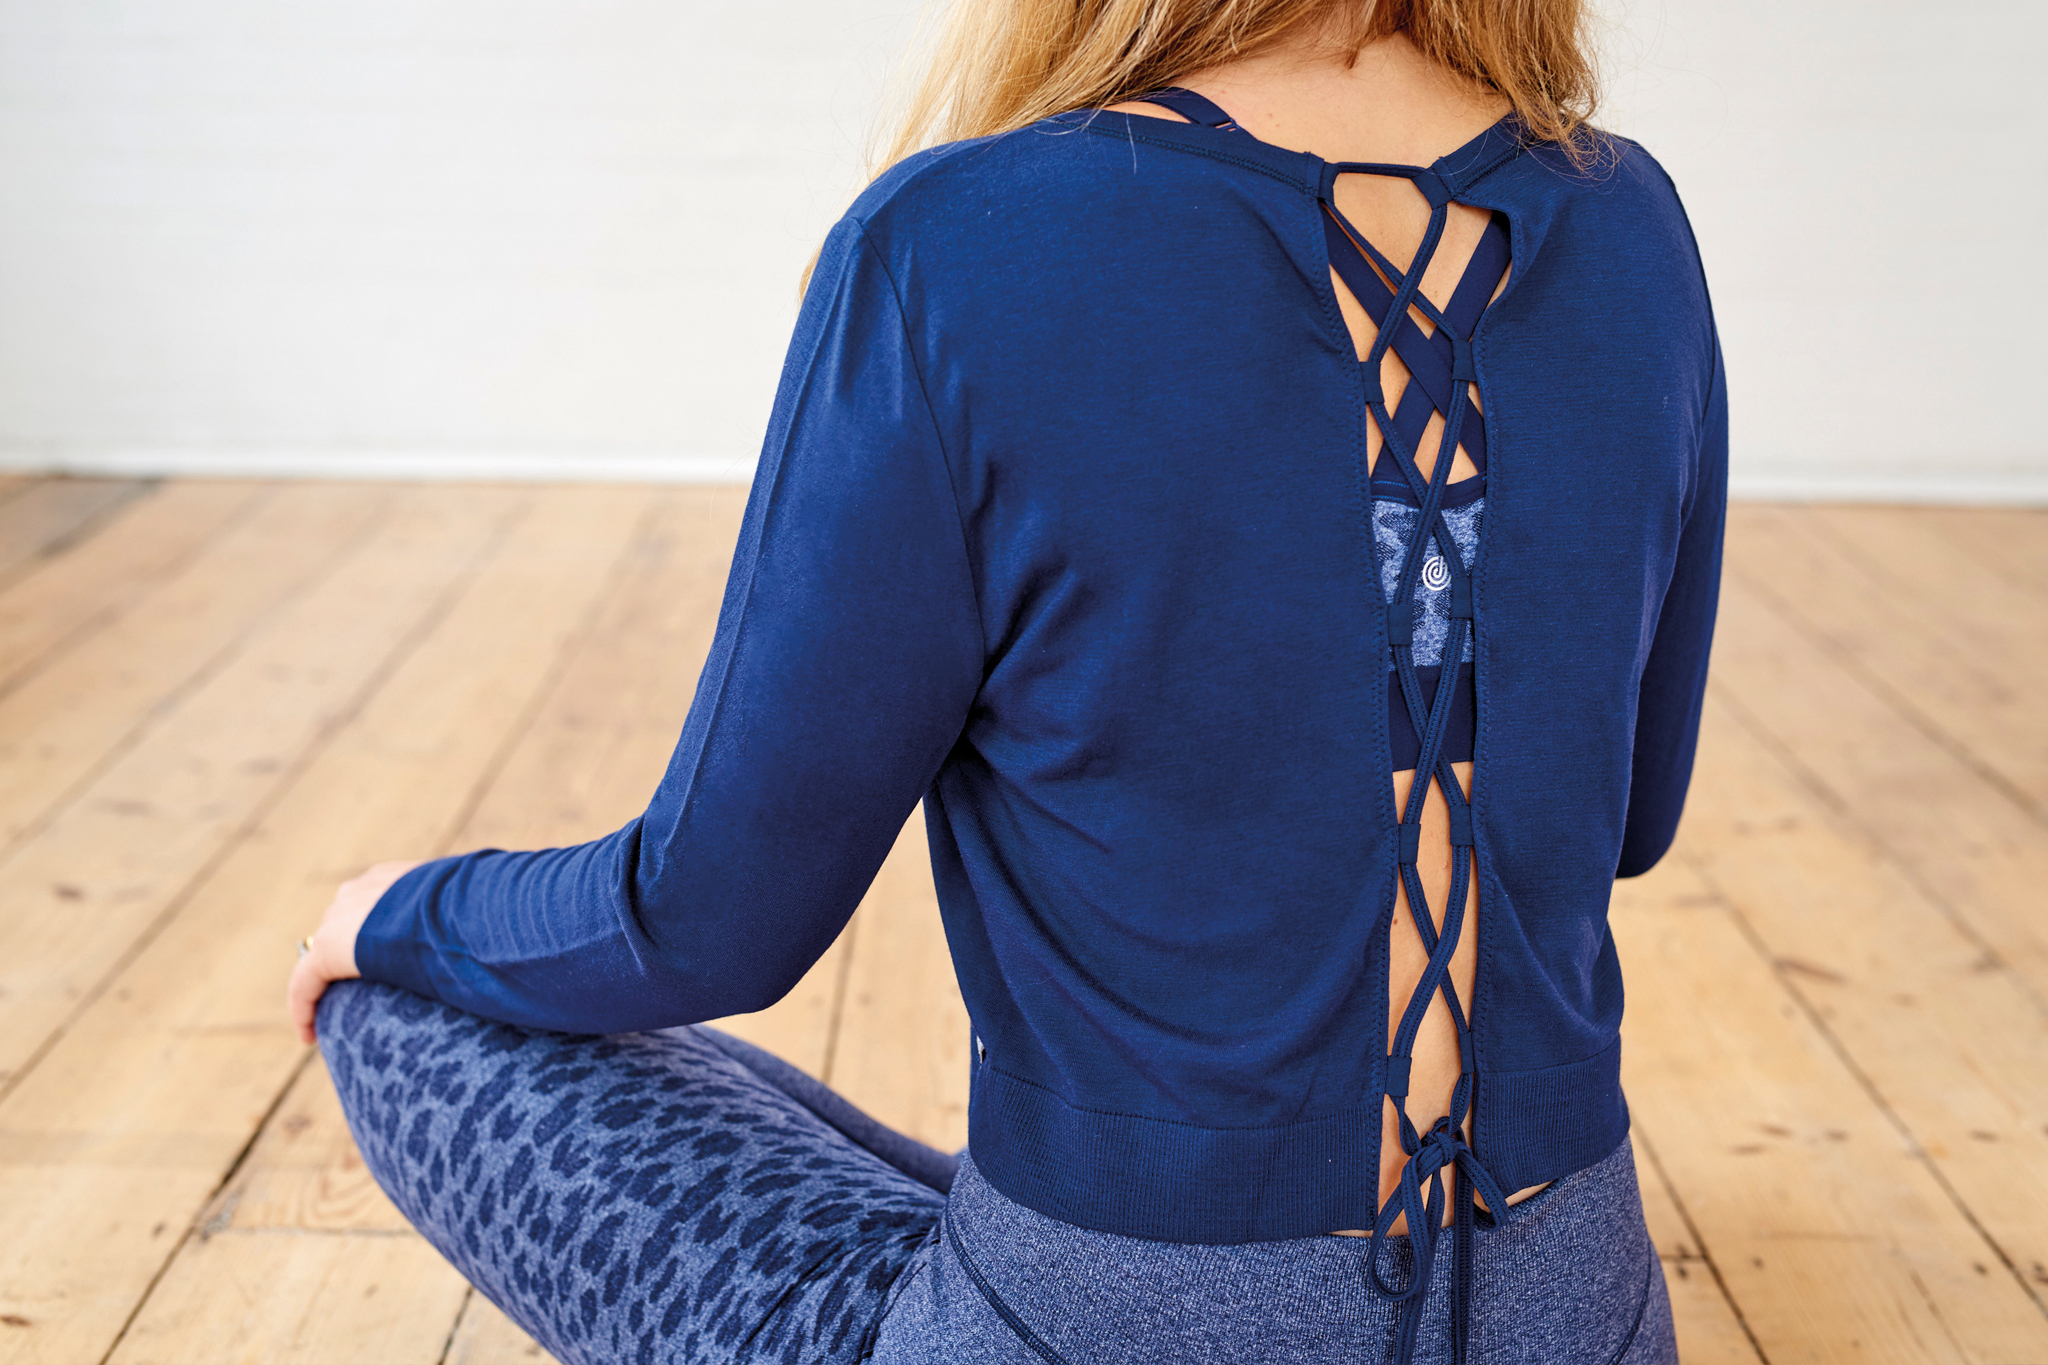 A person sits with their back to the camera, their legs are crossed and their hands are on their knees. They are wearing a blue top that has a criss cross pattern on the back, with blue leggings.